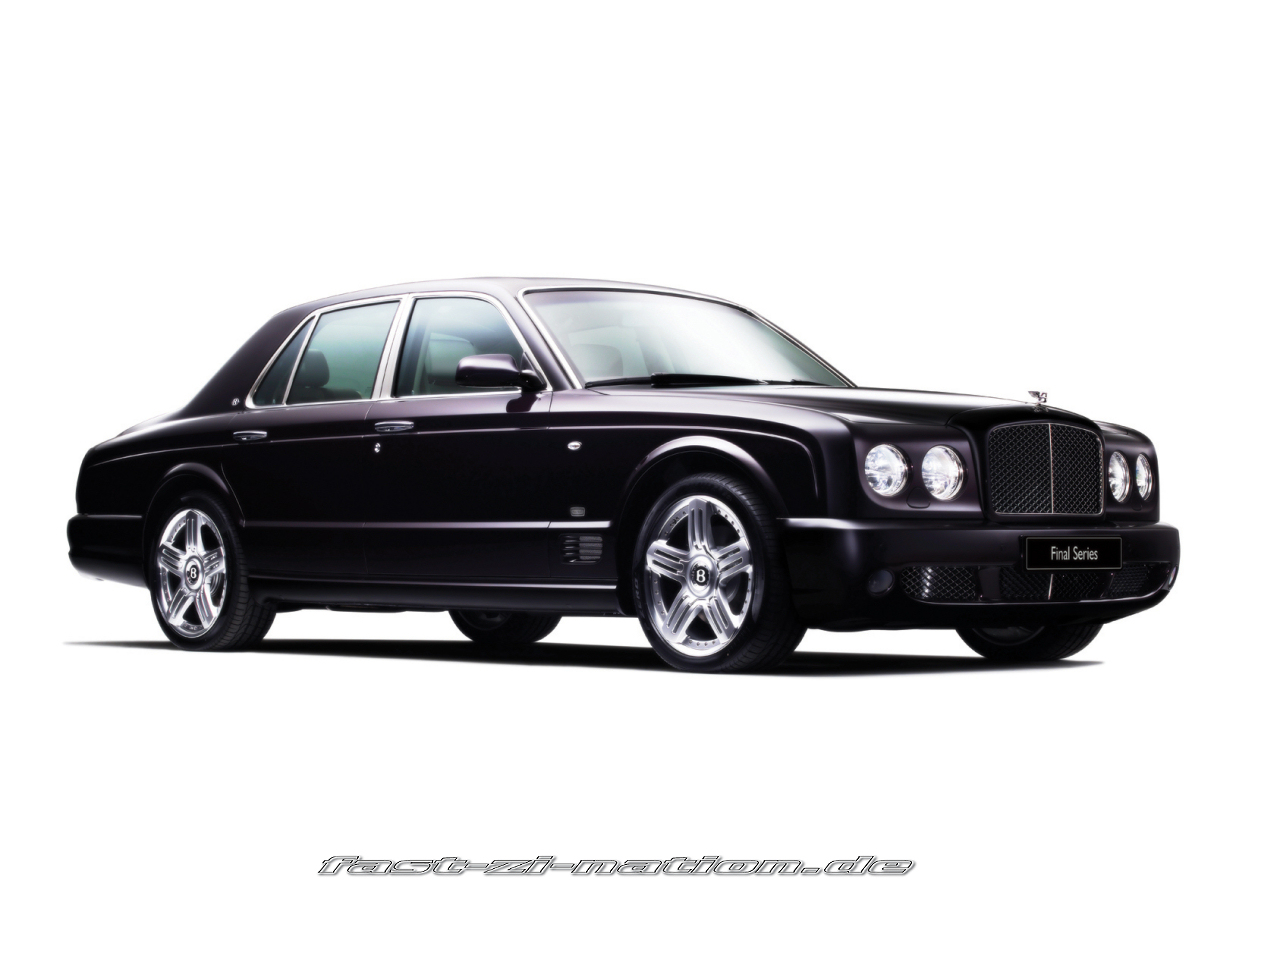 wBentley Arnage Final Series